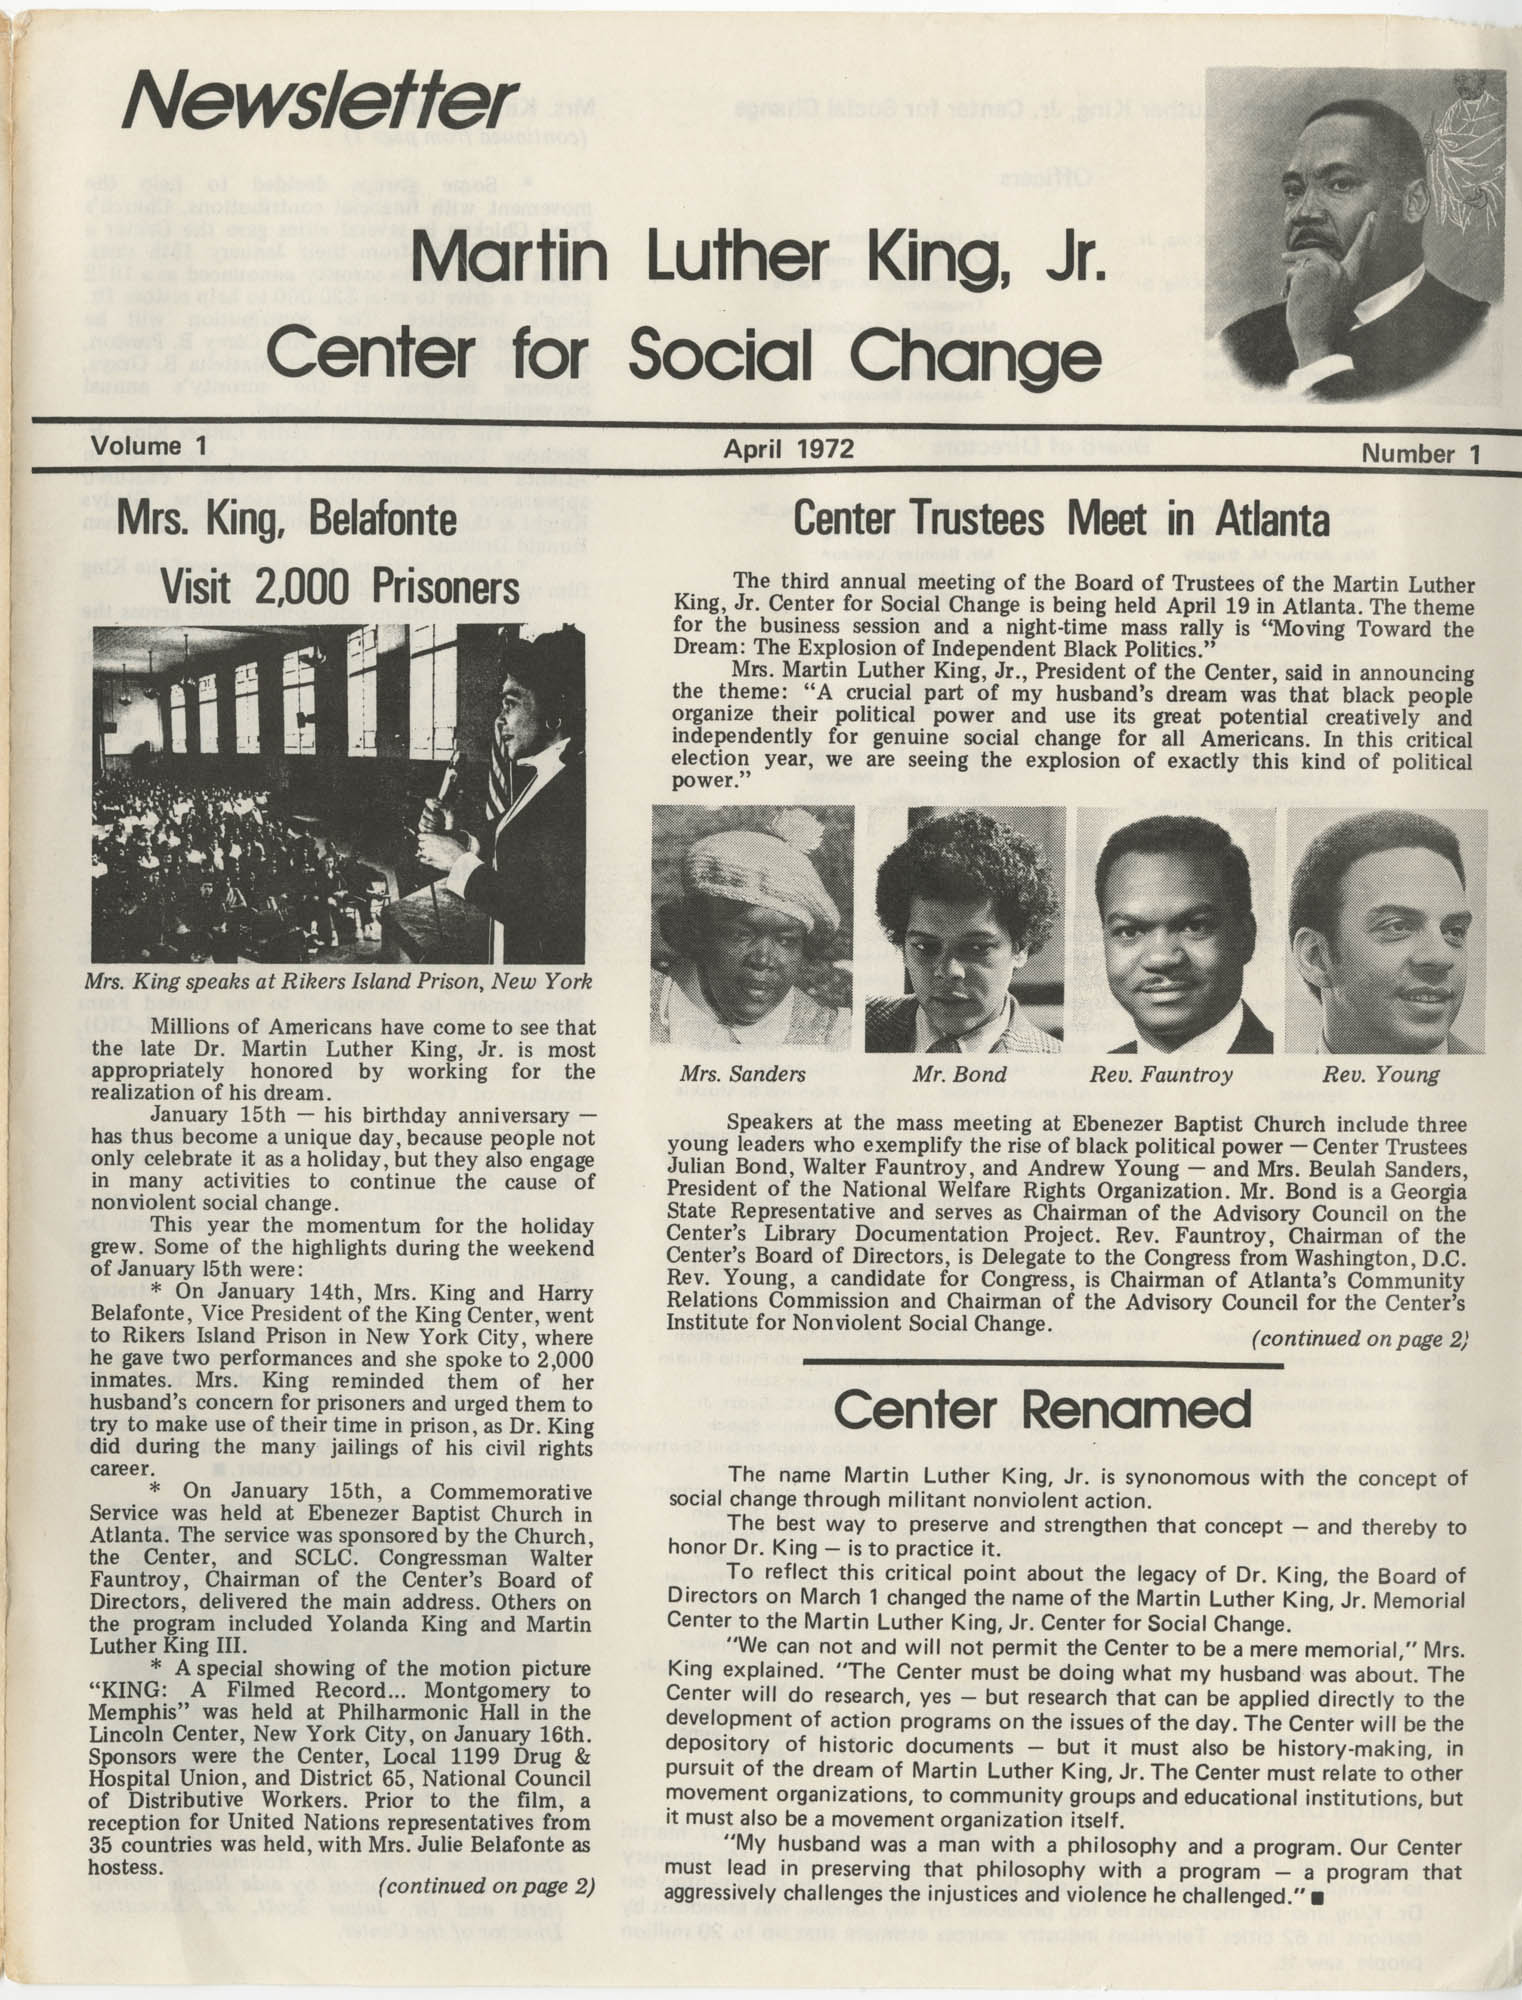 Martin Luther King, Jr. Center for Social Change Newsletter, Volume 1, Number 1